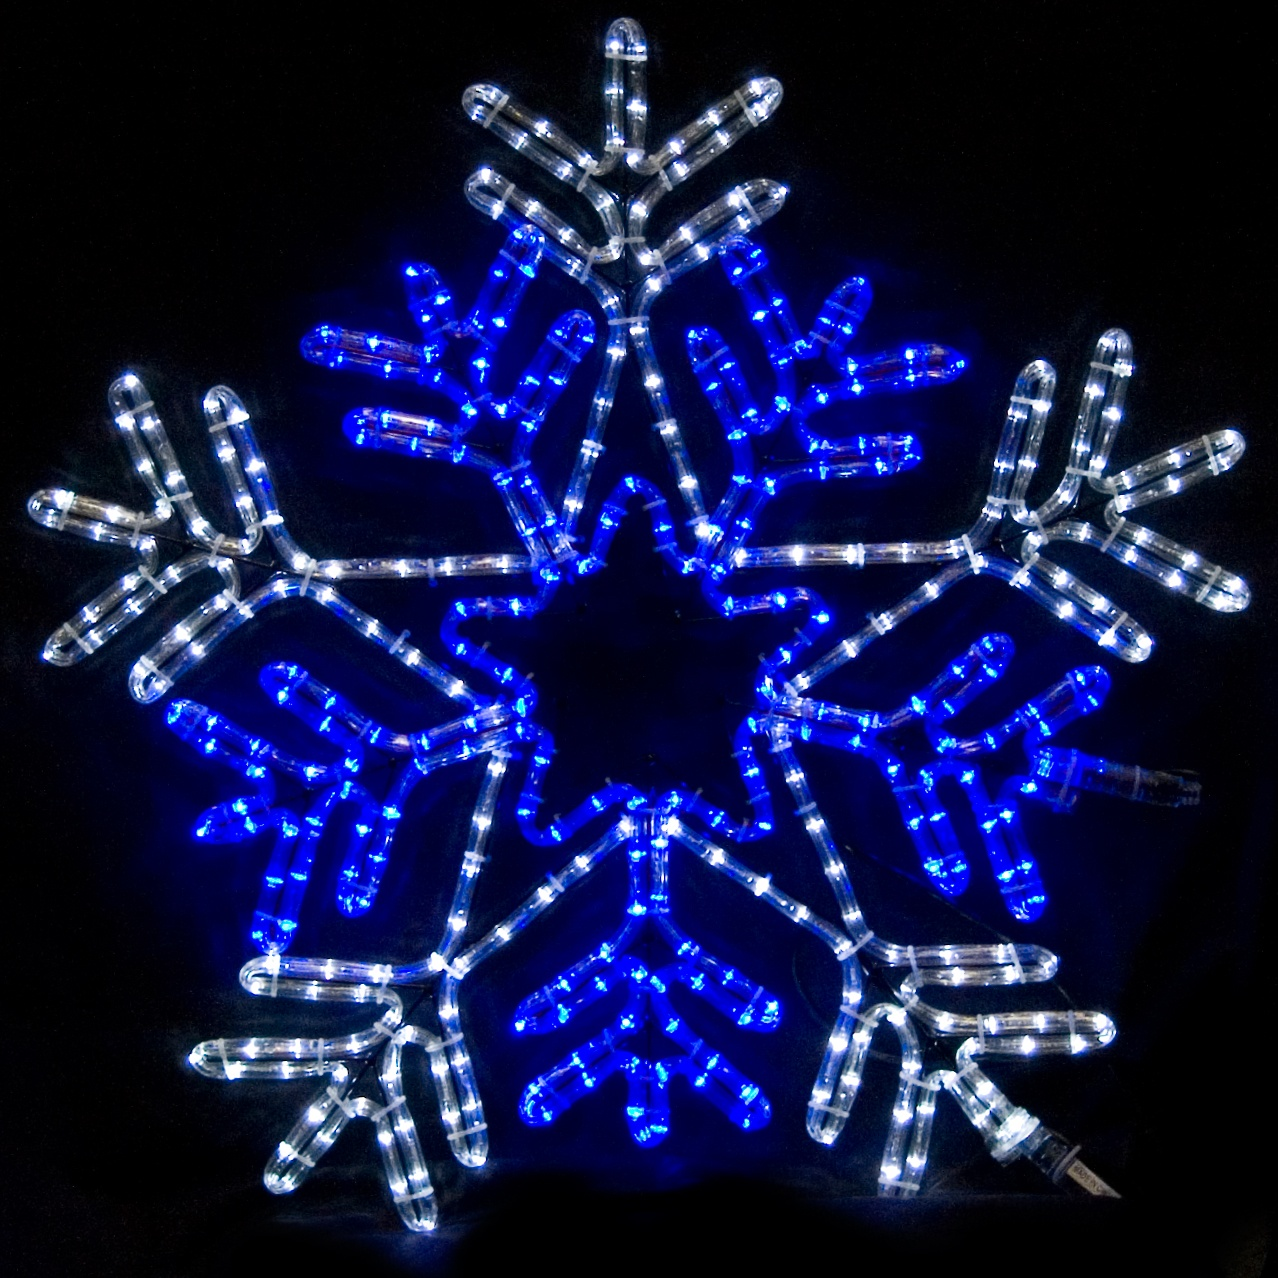 snowflakes stars 26 snowflake with blue center